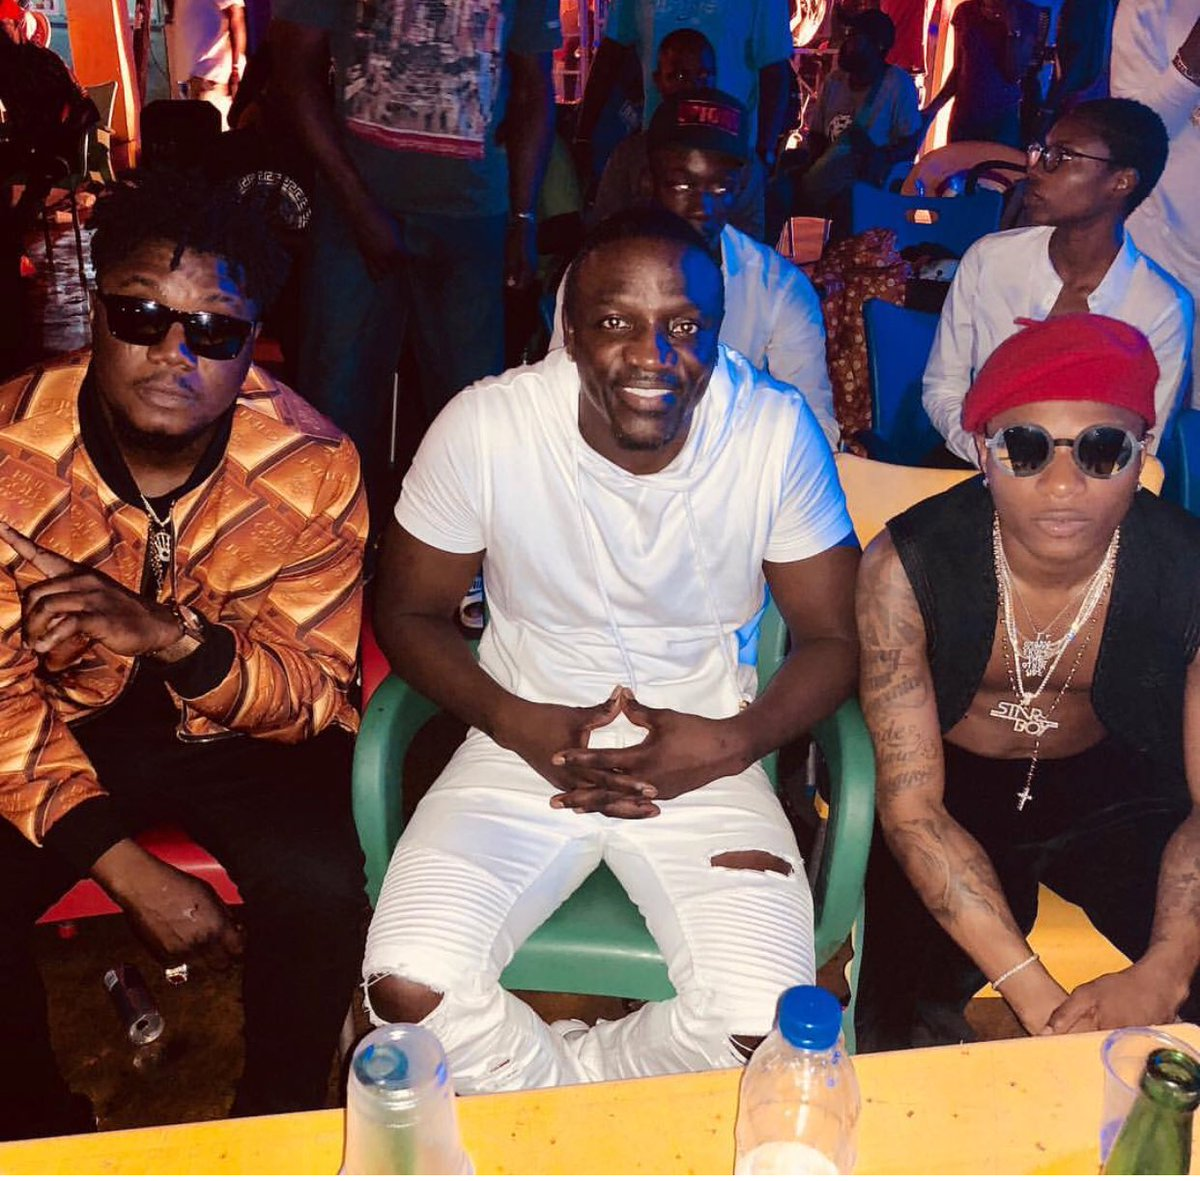 Left to right @wizkidayo @cdqolowo https://t.co/a0k5LcSabW